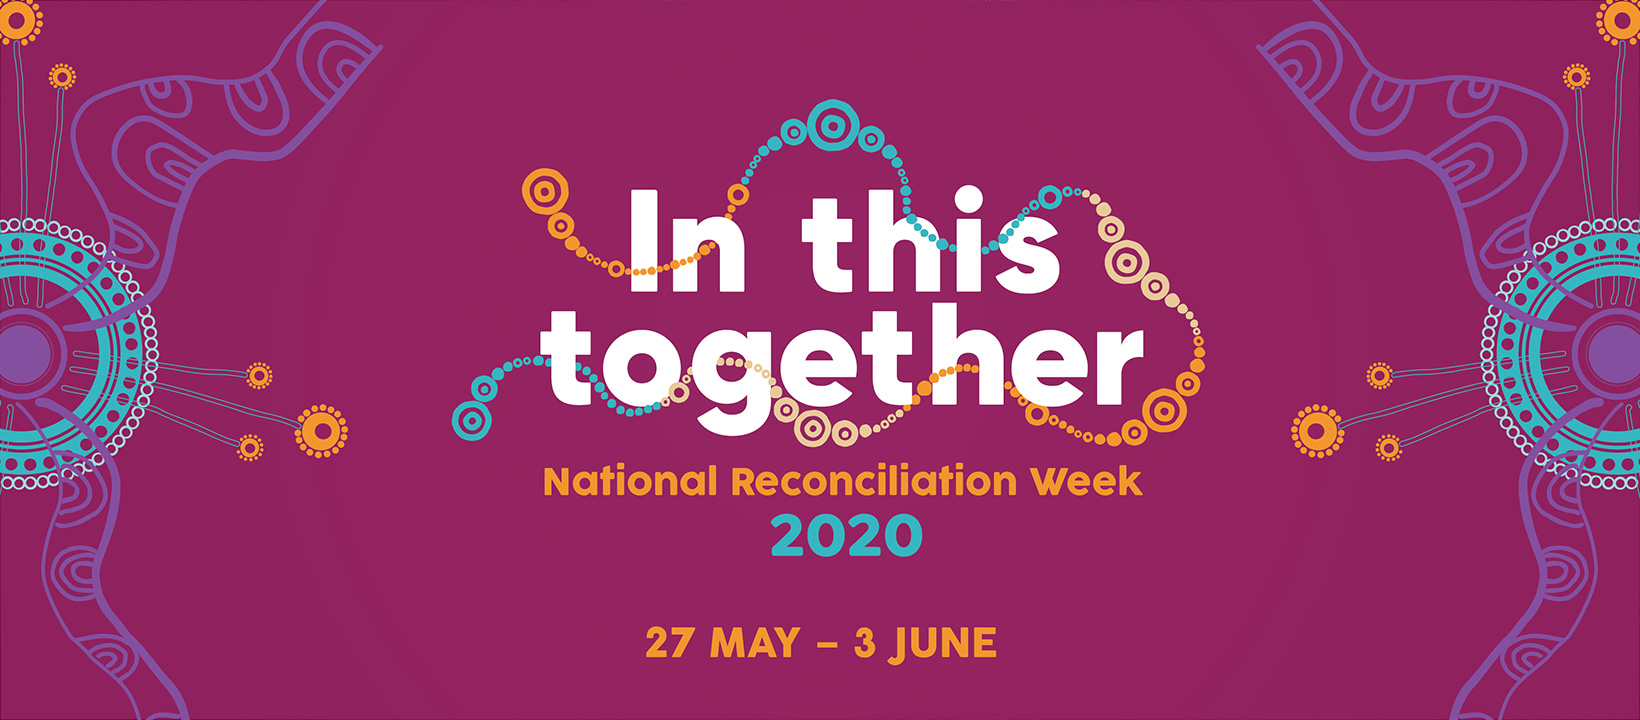 National Reconciliation Week 2020 banner